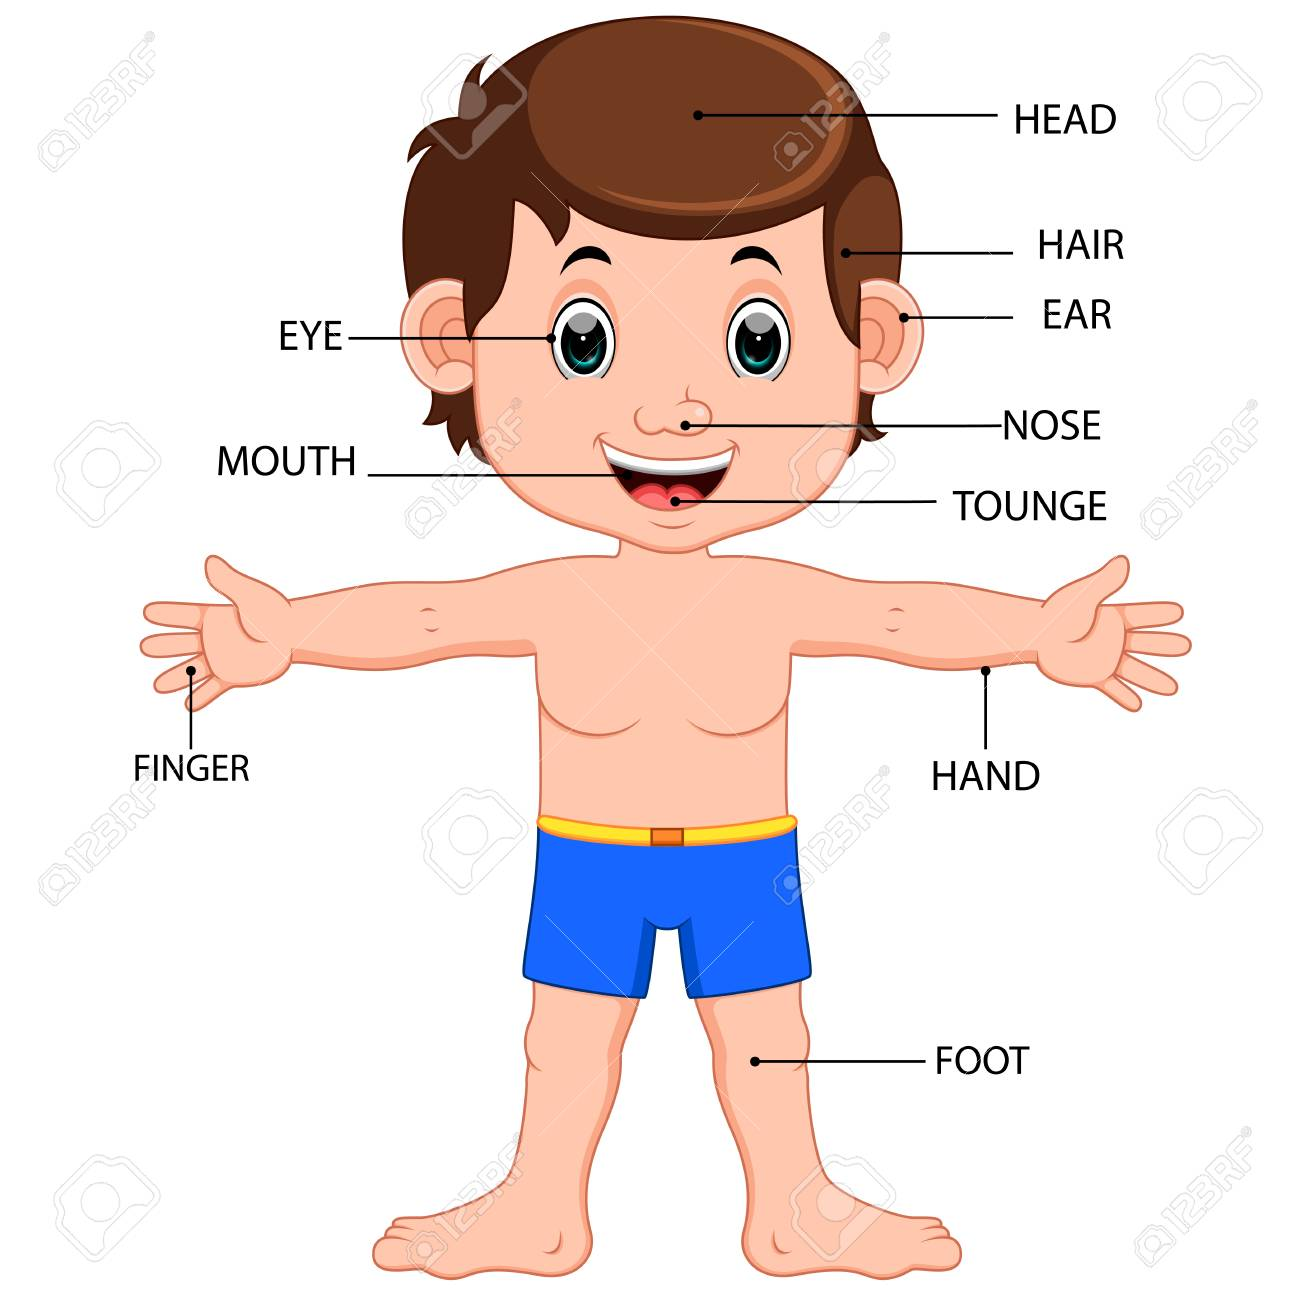 boy body parts diagram poster.